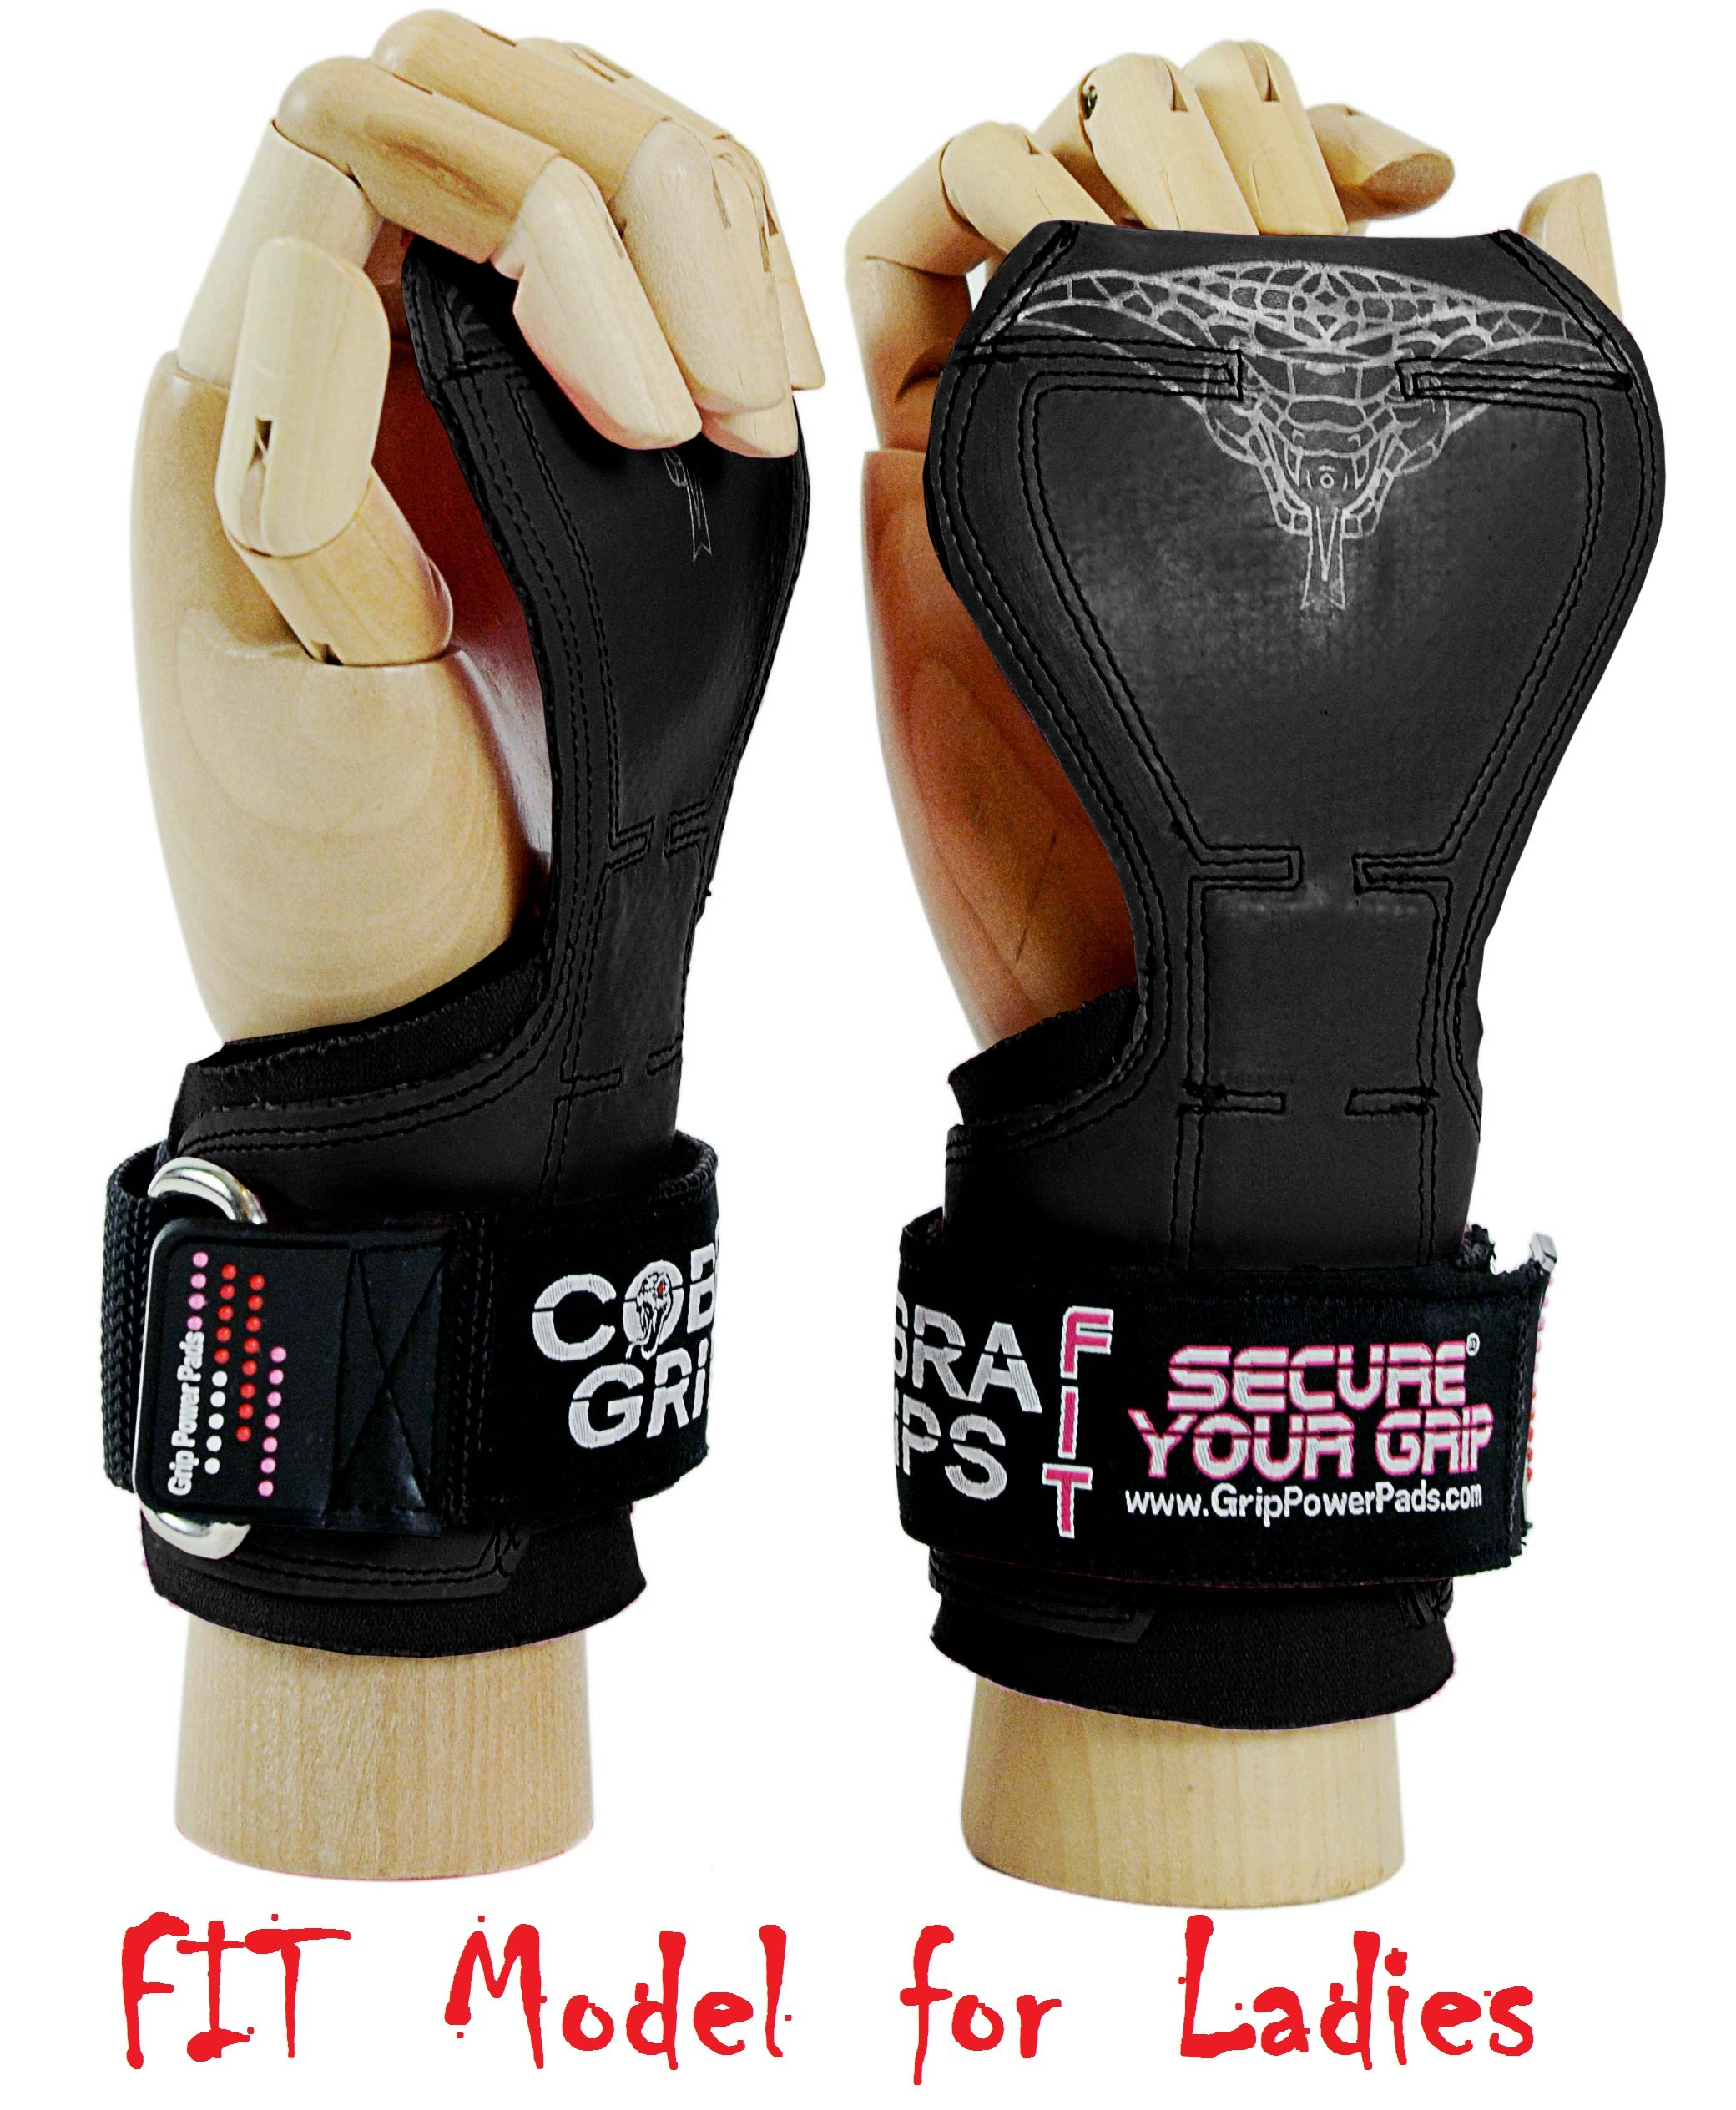 Fitness Weight Lifting Gloves: Wraps Grips Men Women Weight Lifting Straps Gloves Gym